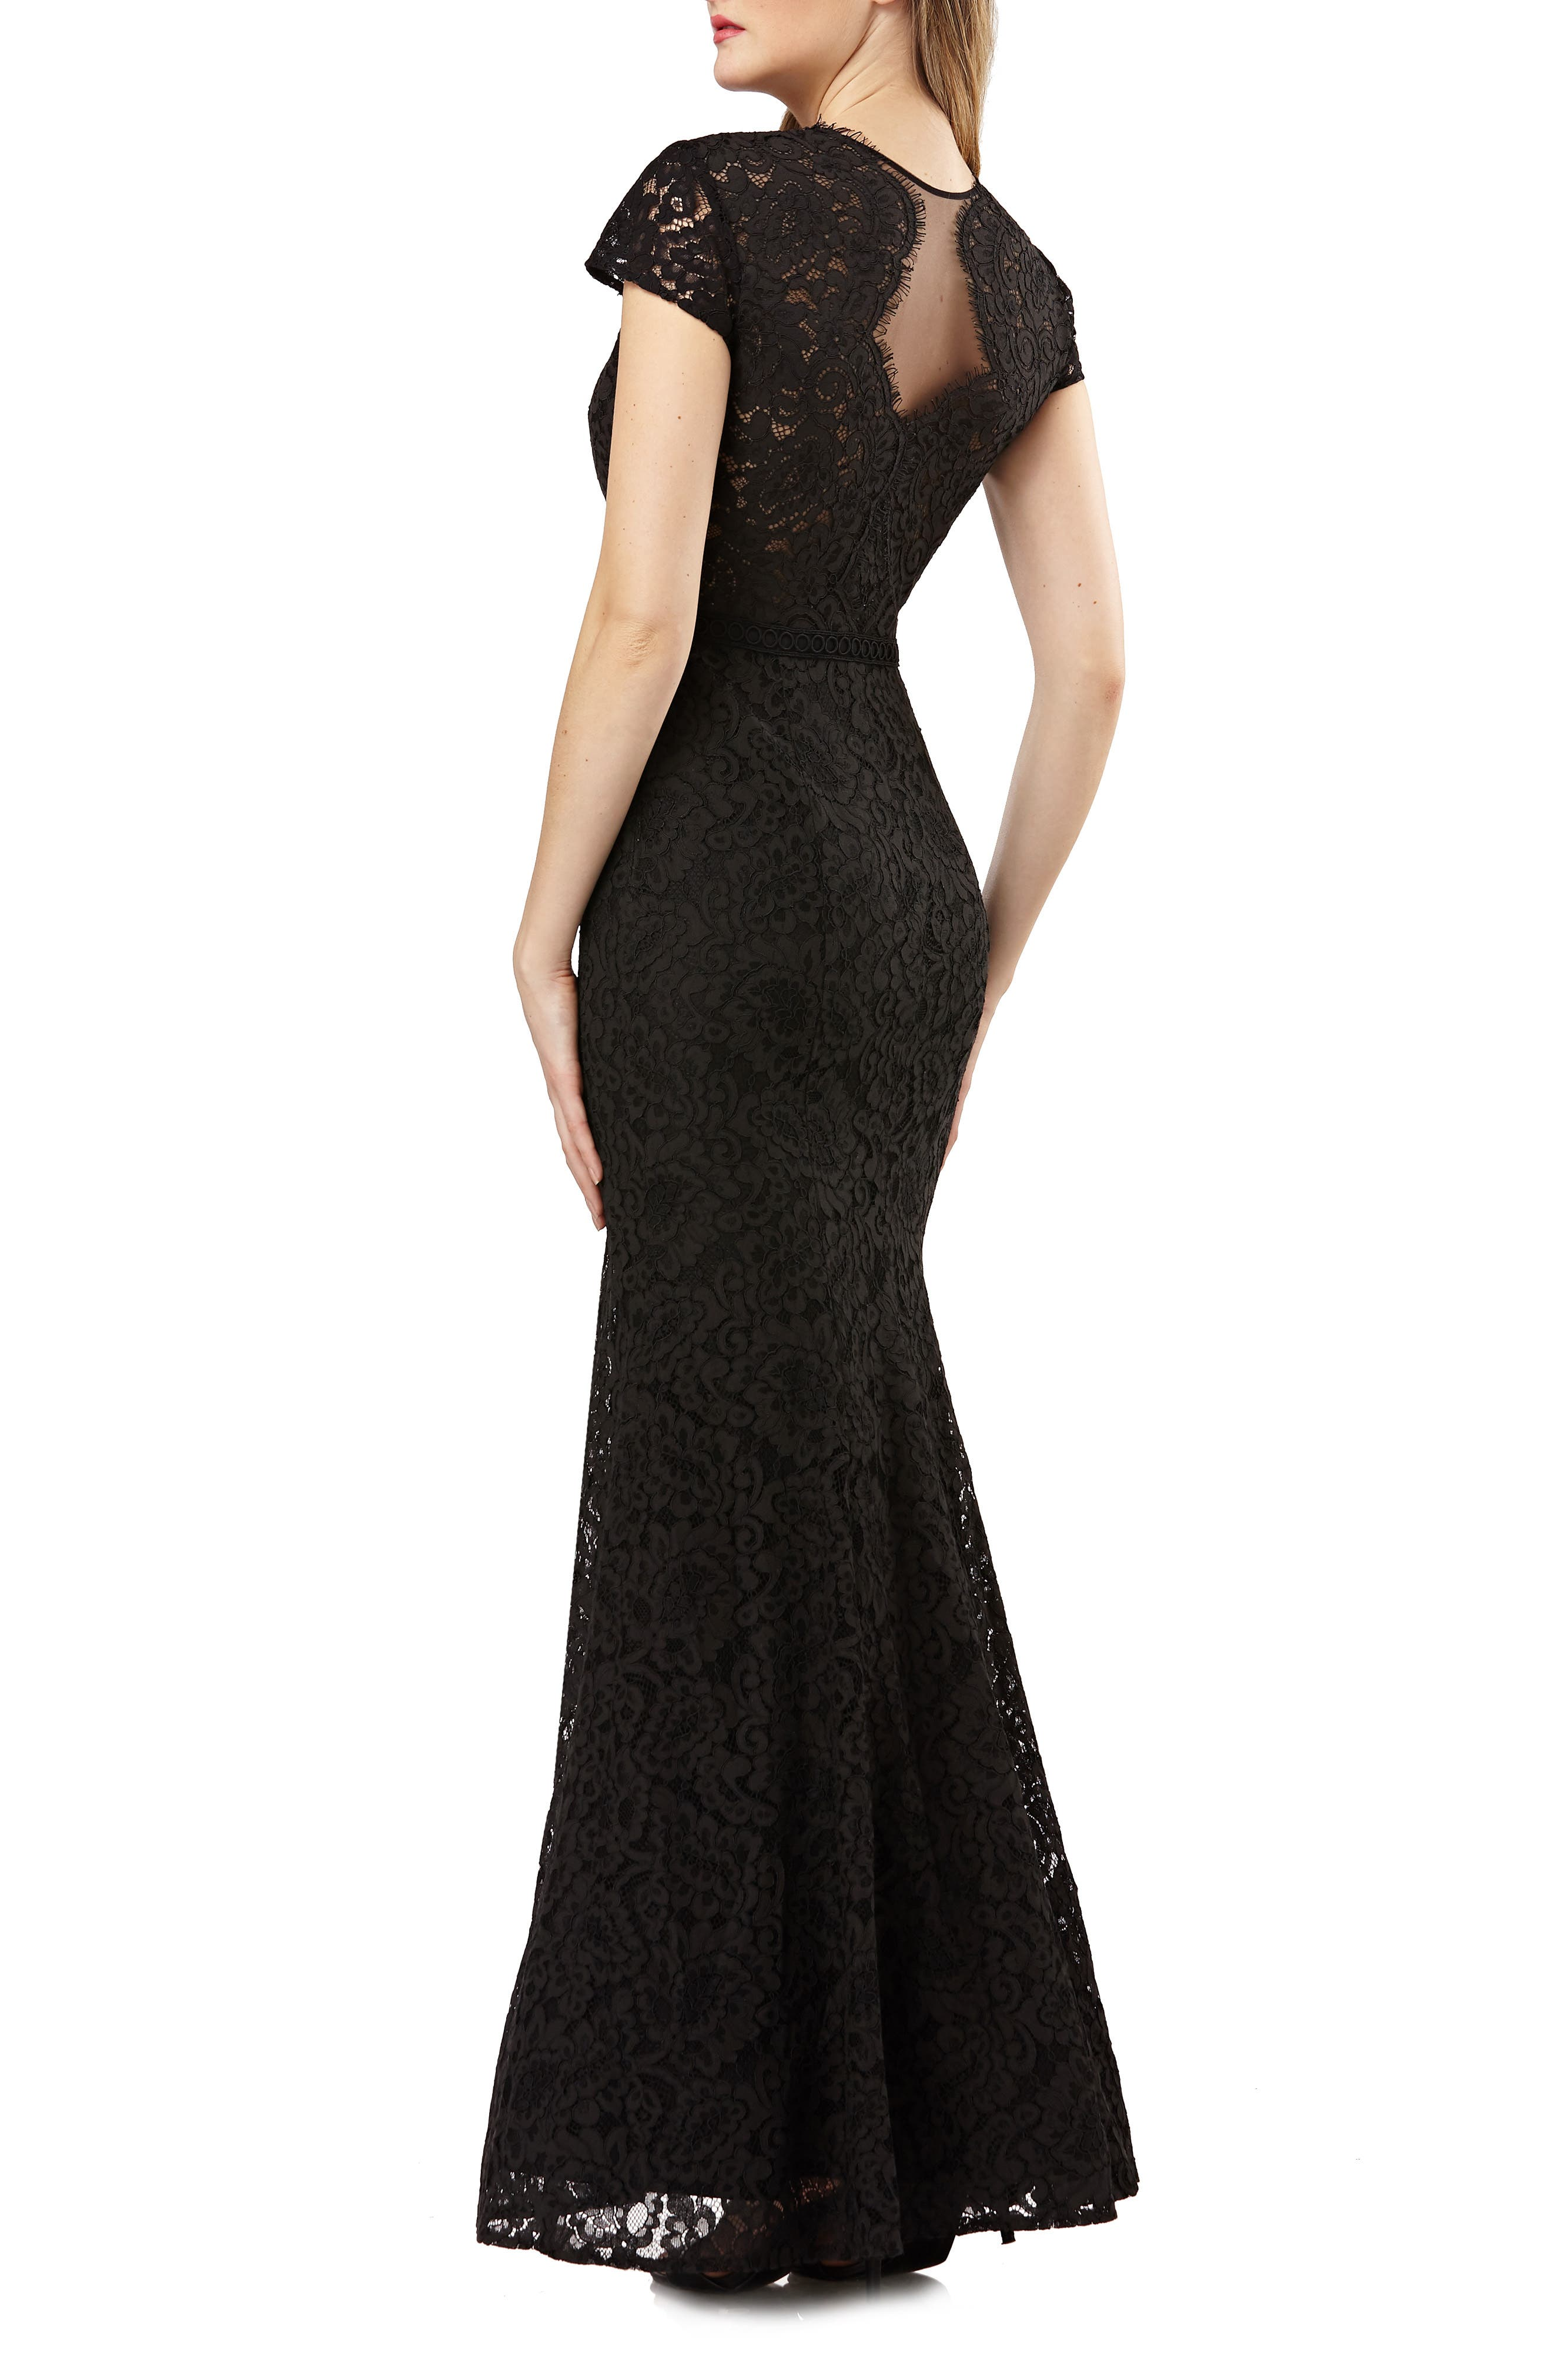 JS COLLECTIONS, Lace Mermaid Gown, Alternate thumbnail 2, color, 001